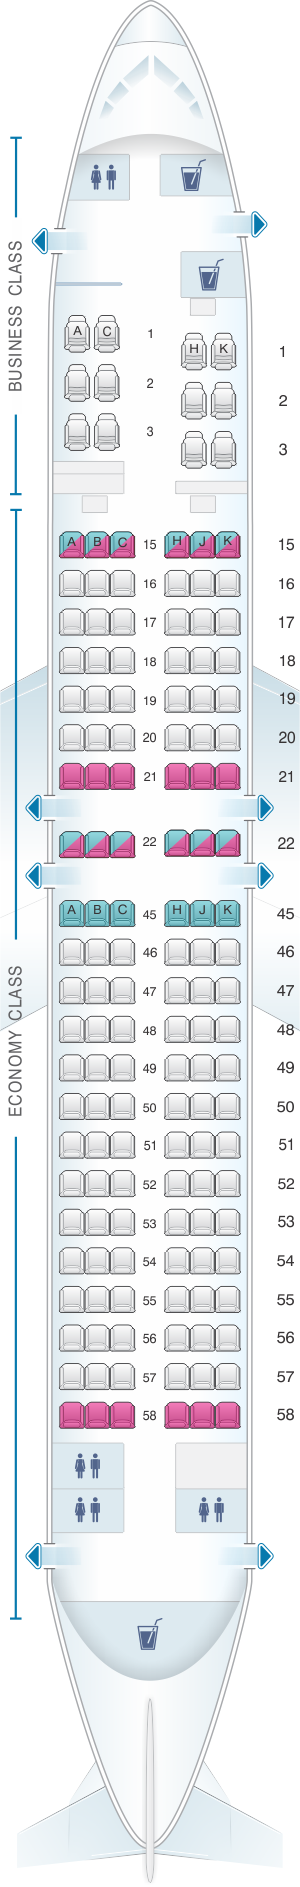 Seat map for Japan Airlines (JAL) Boeing B737 800 V40